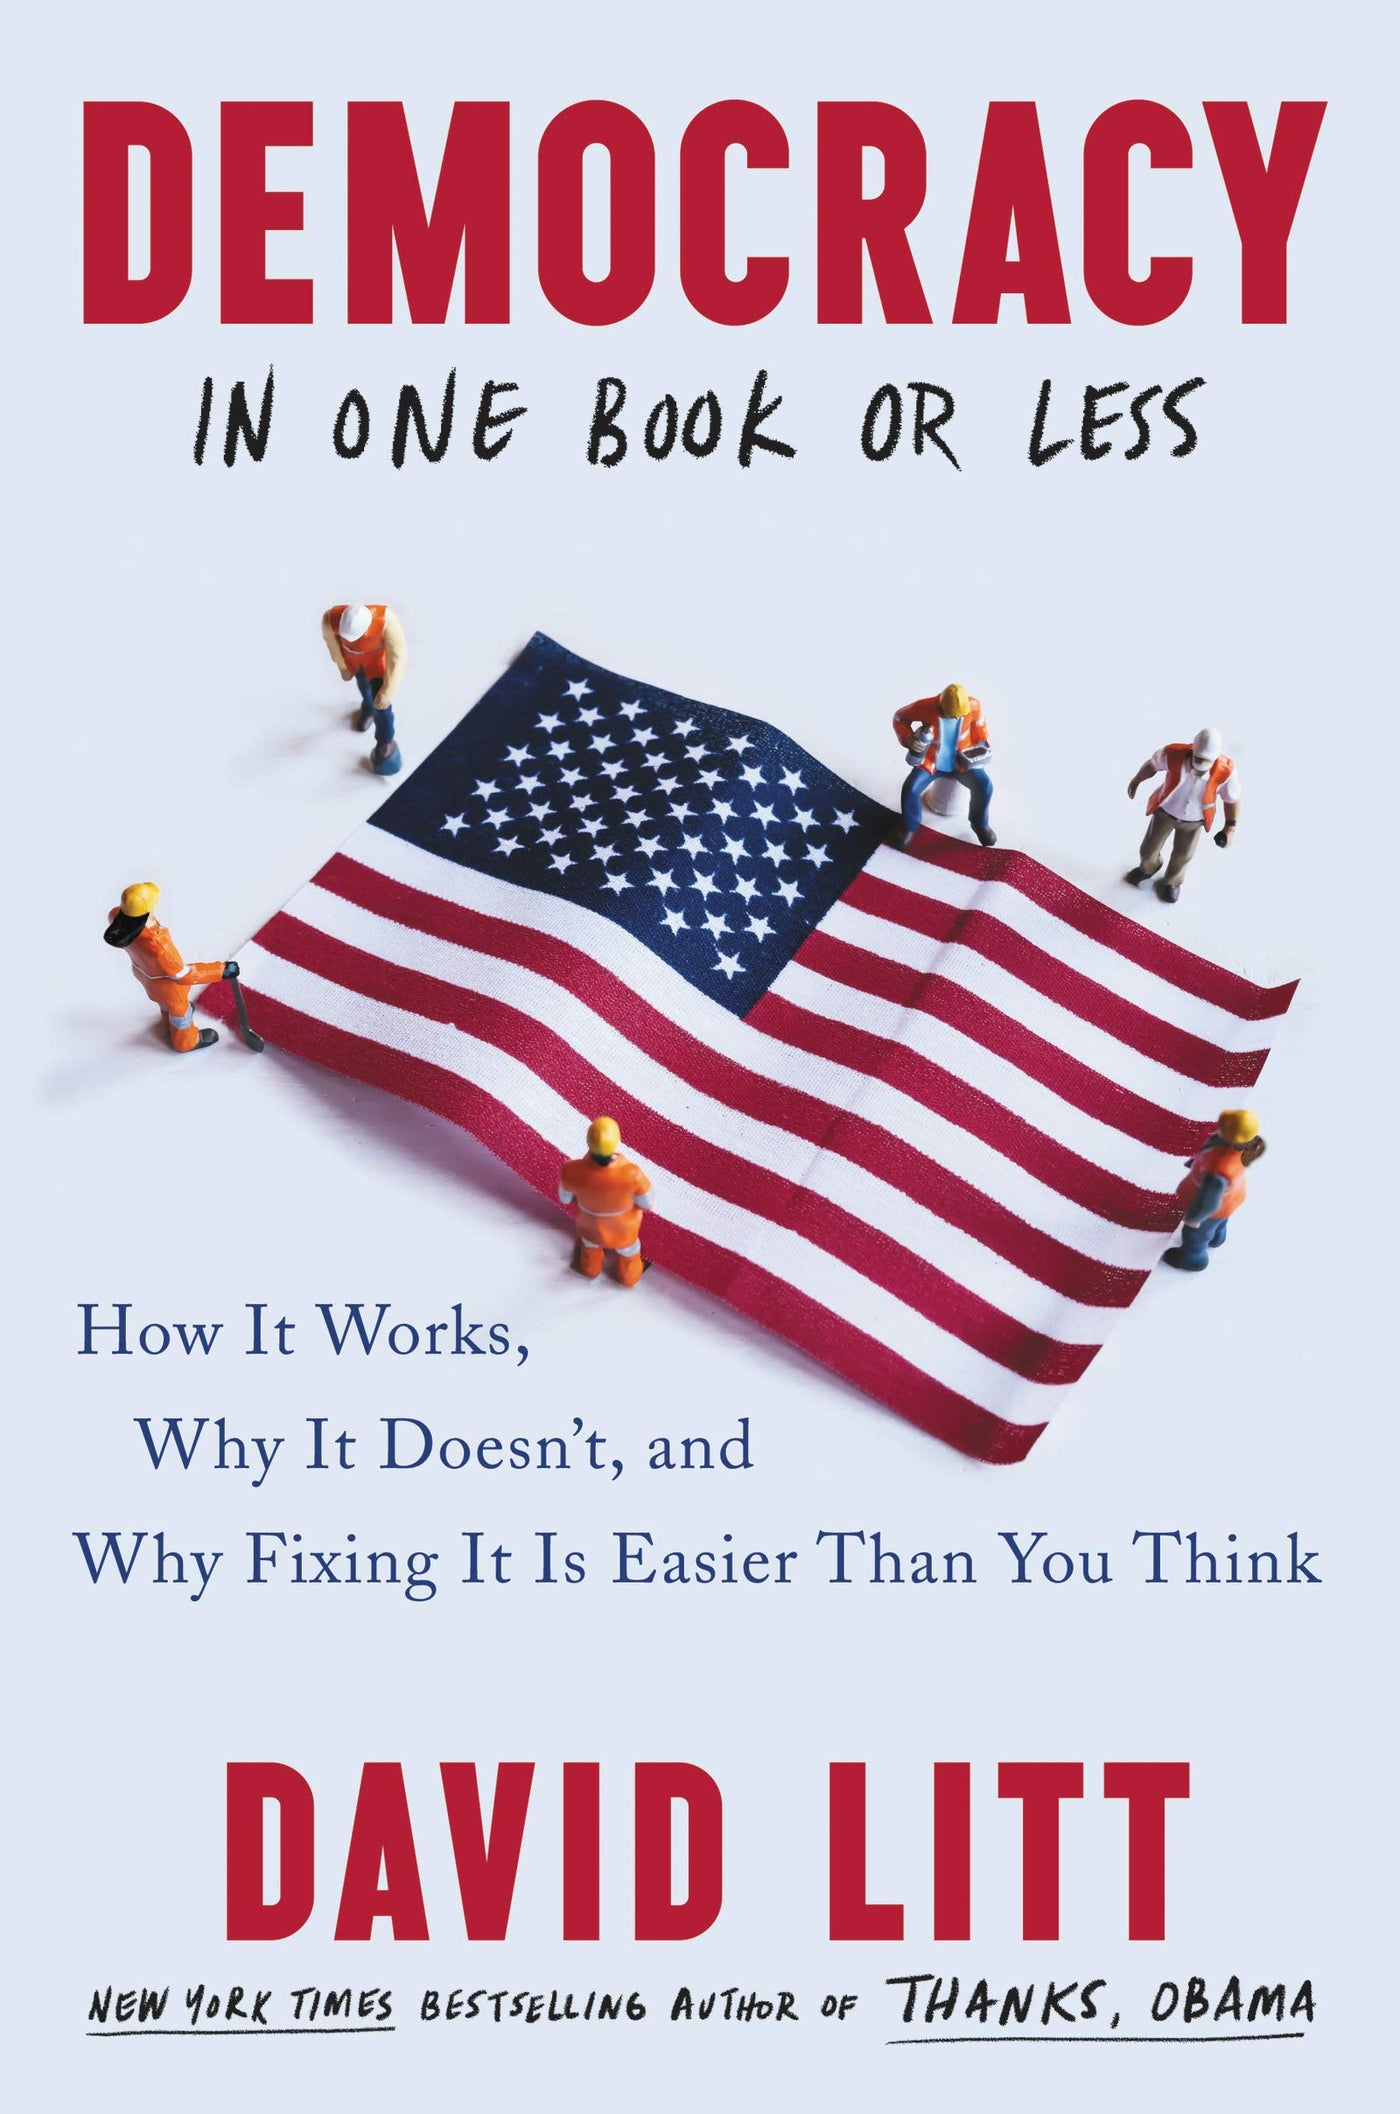 Democracy in One Book or Less: How It Works, Why It Doesn't, and Why Fixing It Is Easier Than You Think by David Litt